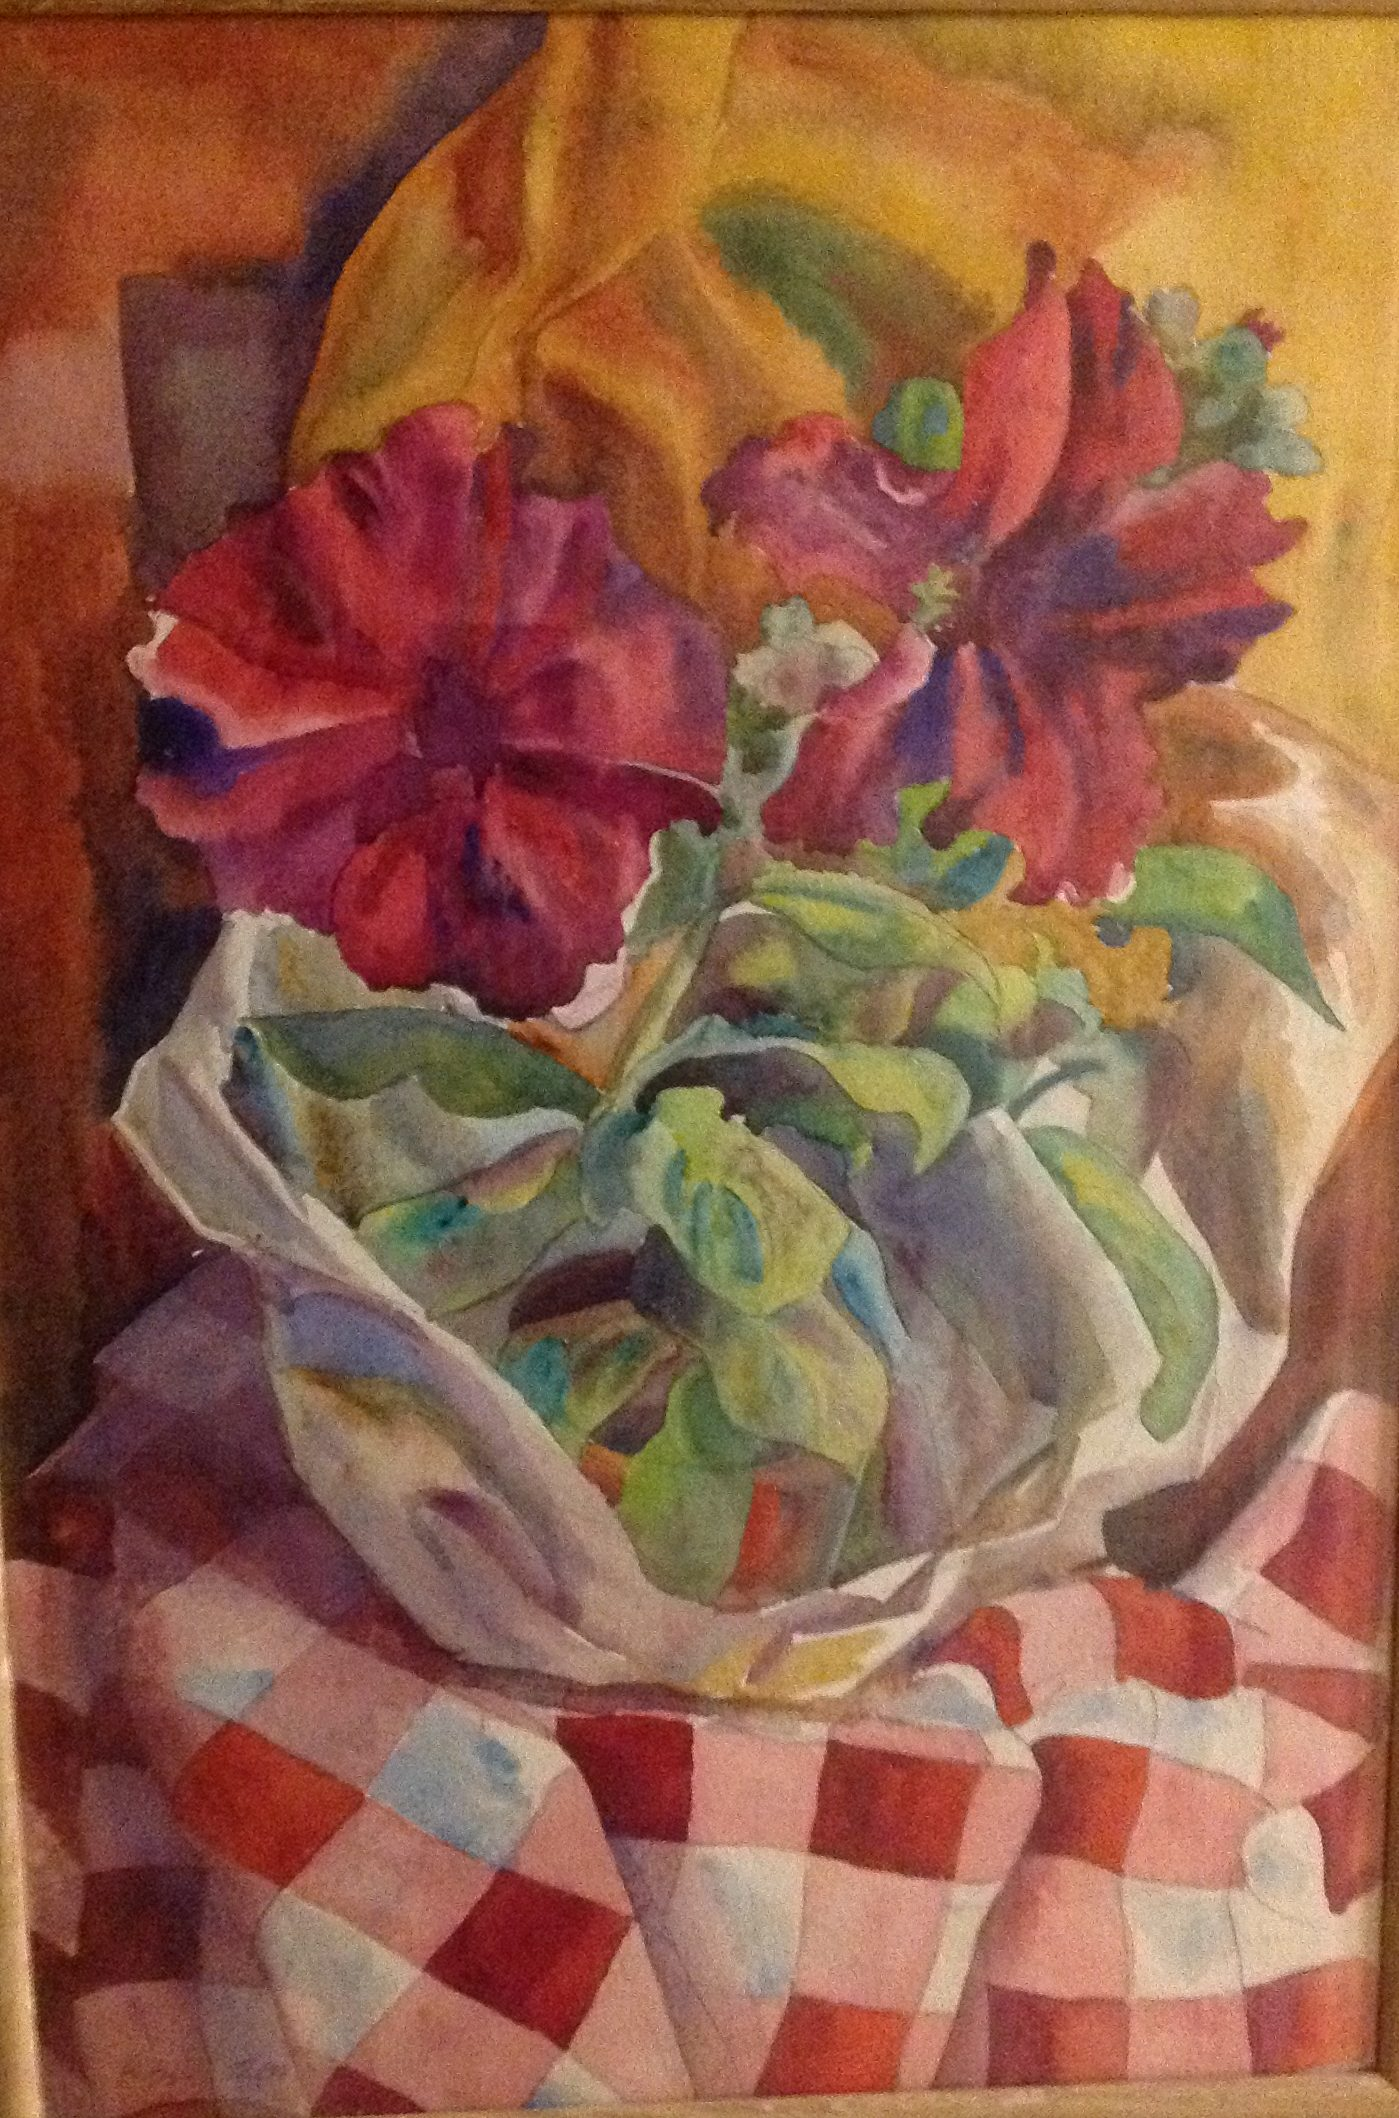 A still life of Flowers on a Chequered Tablecloth 1983 Private collection: Samantha & Ugur Vata